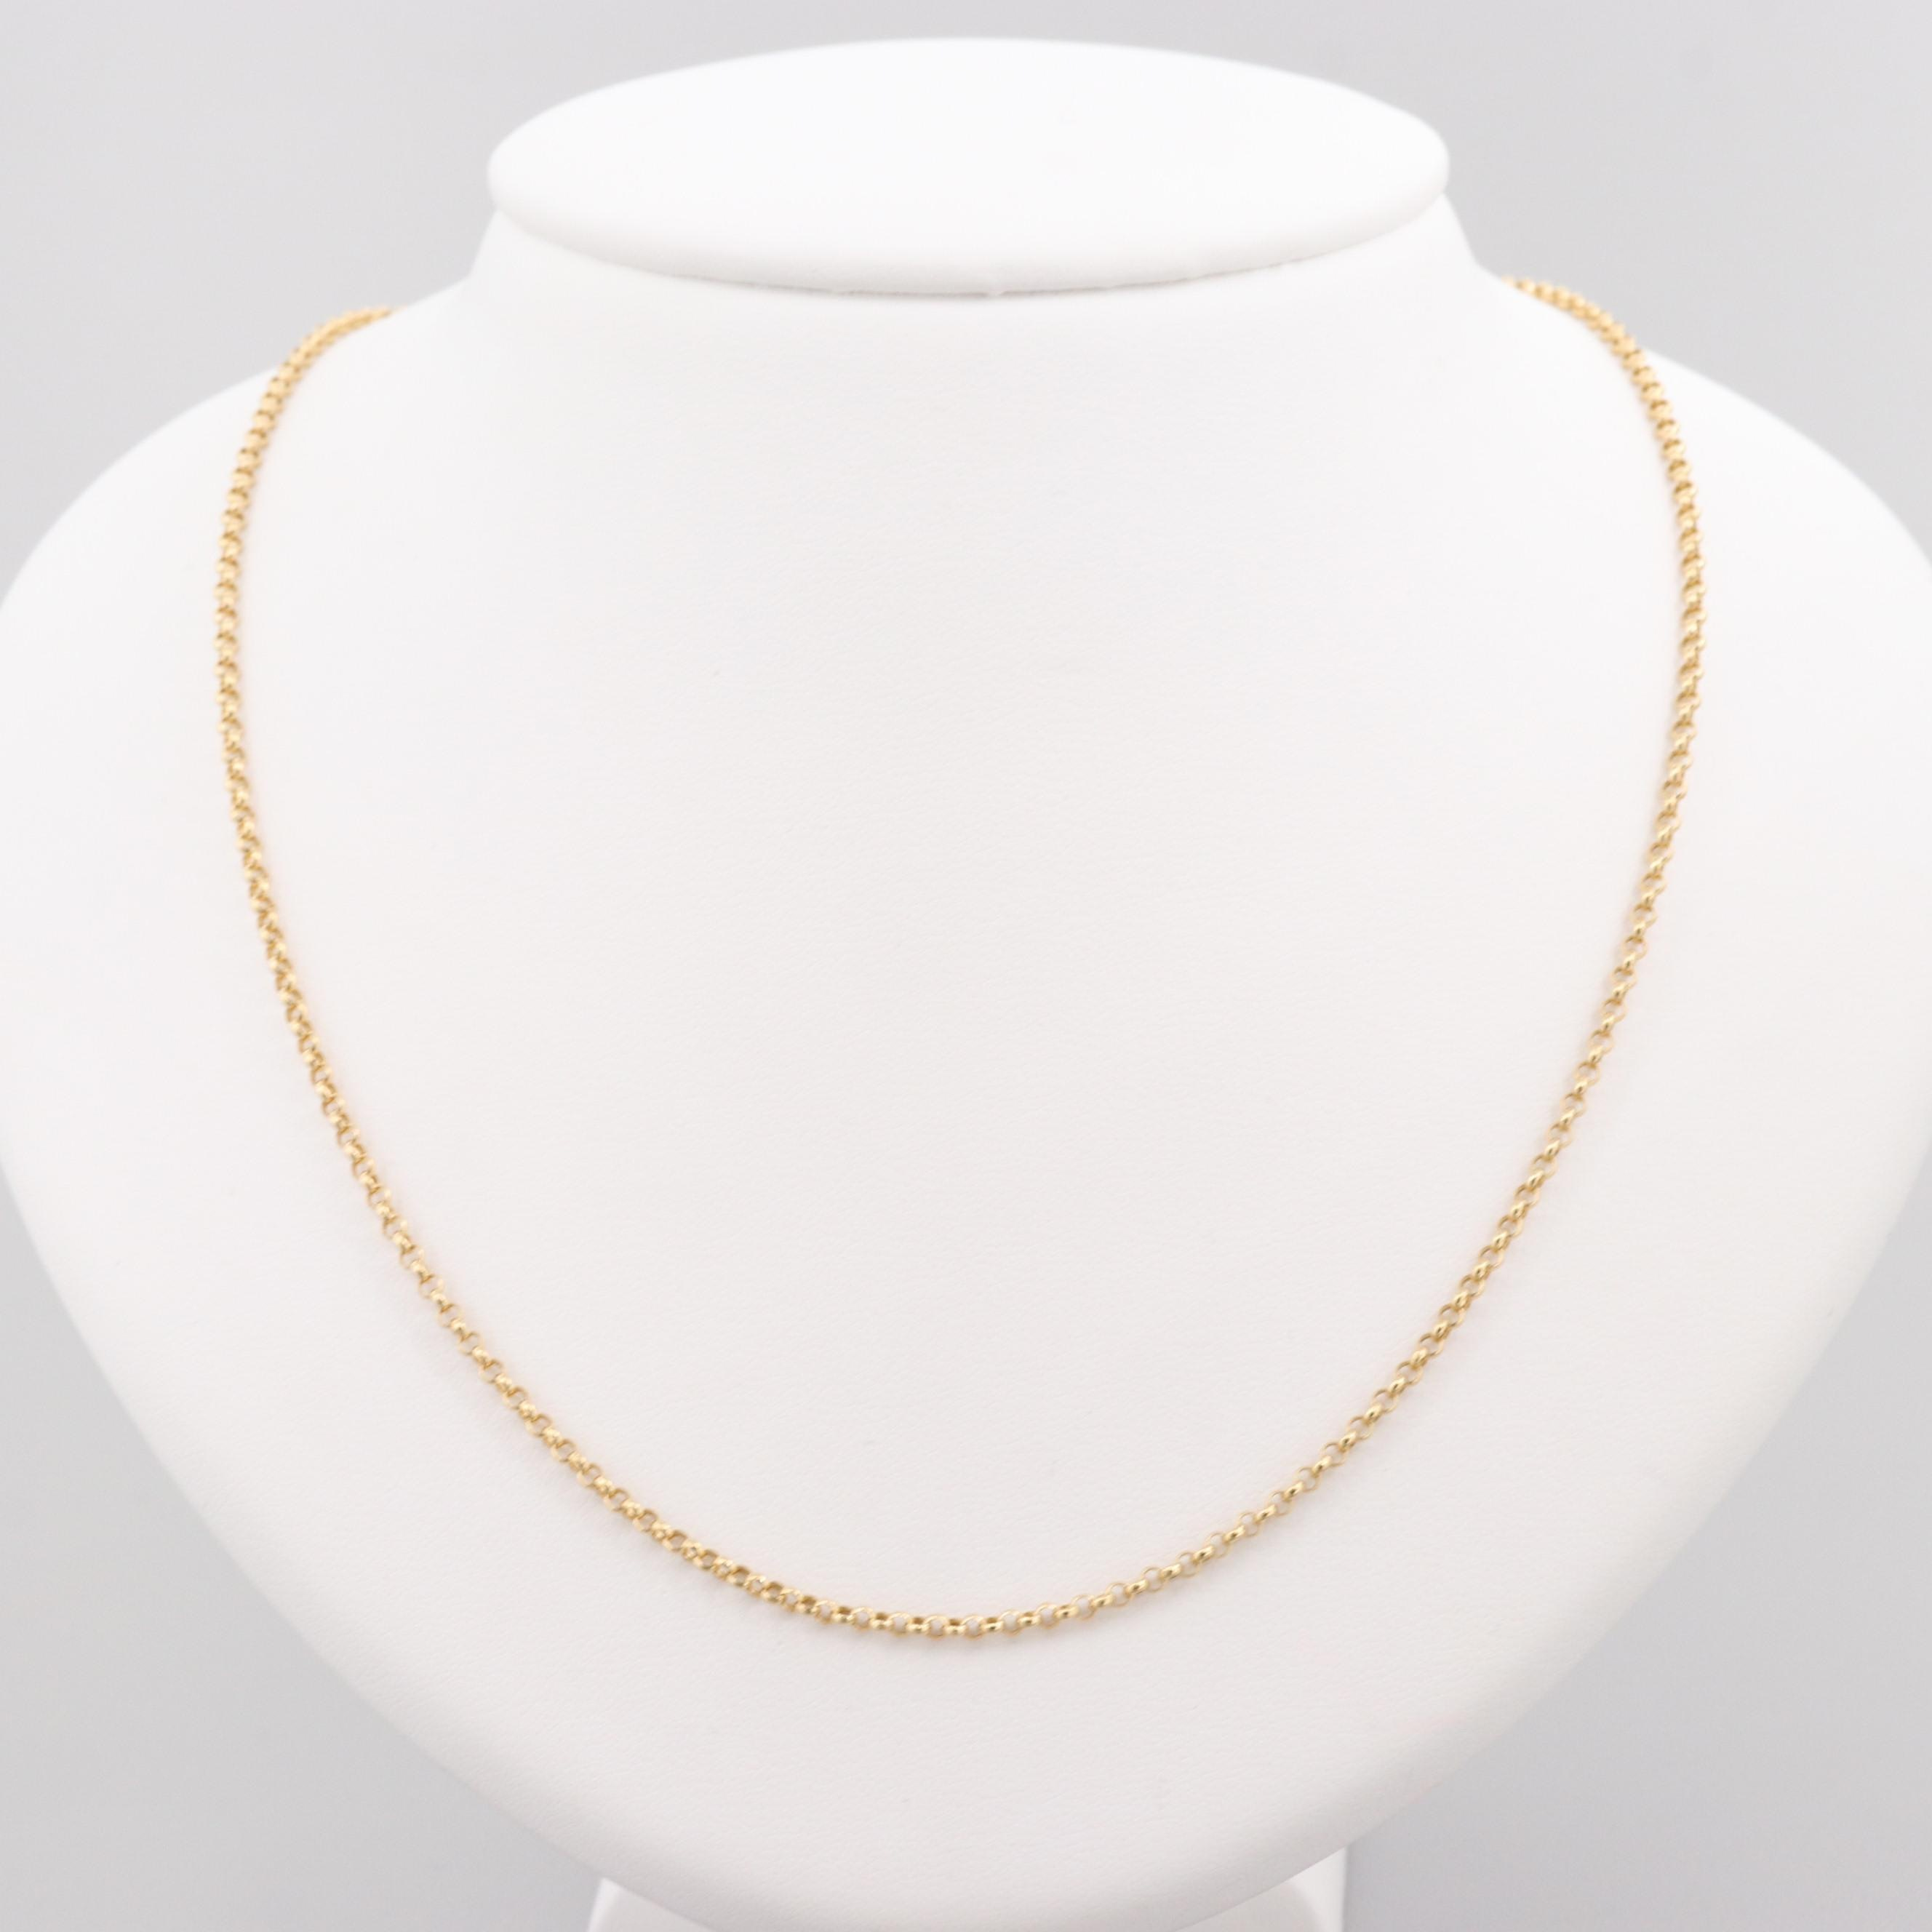 18K Yellow Gold Rolo Chain Necklace